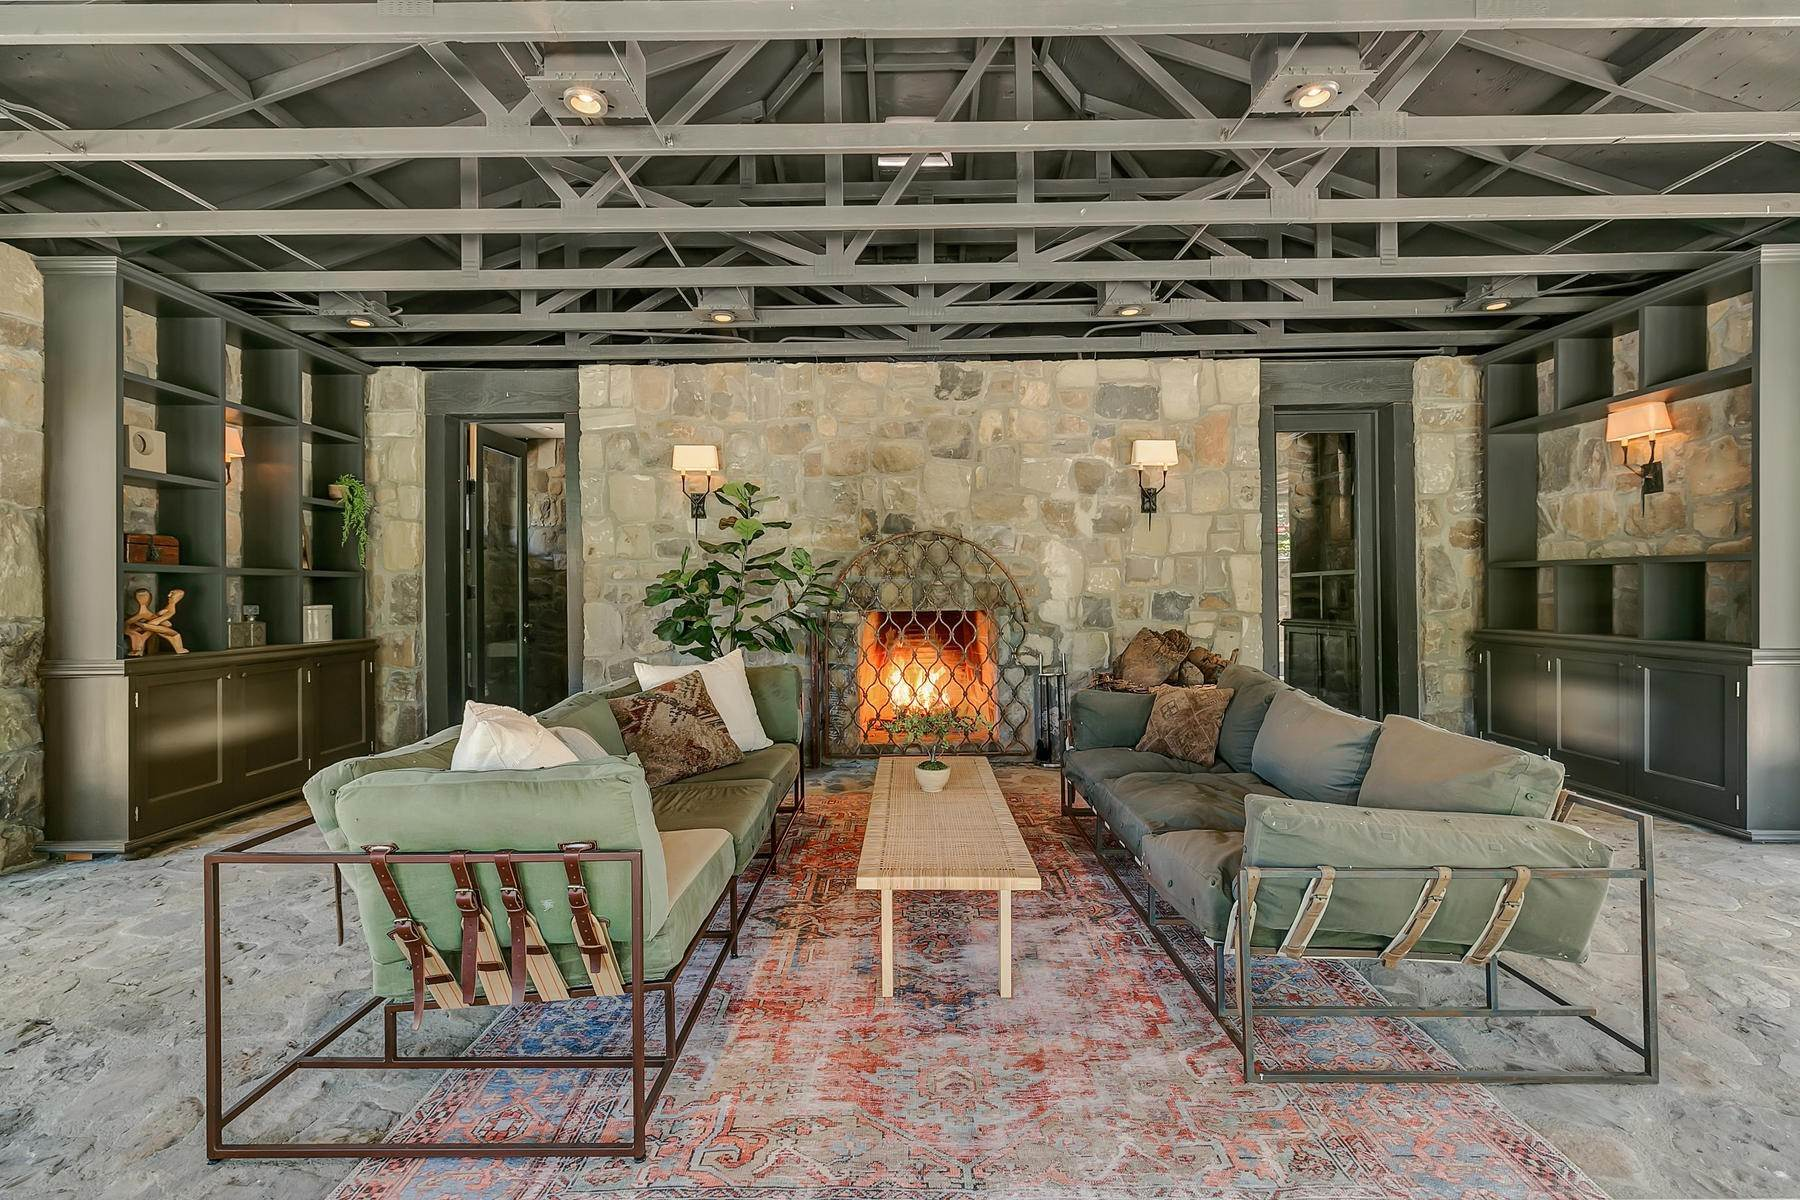 Property for Sale at 4424 Thacher Road Ojai, California 93023 United States